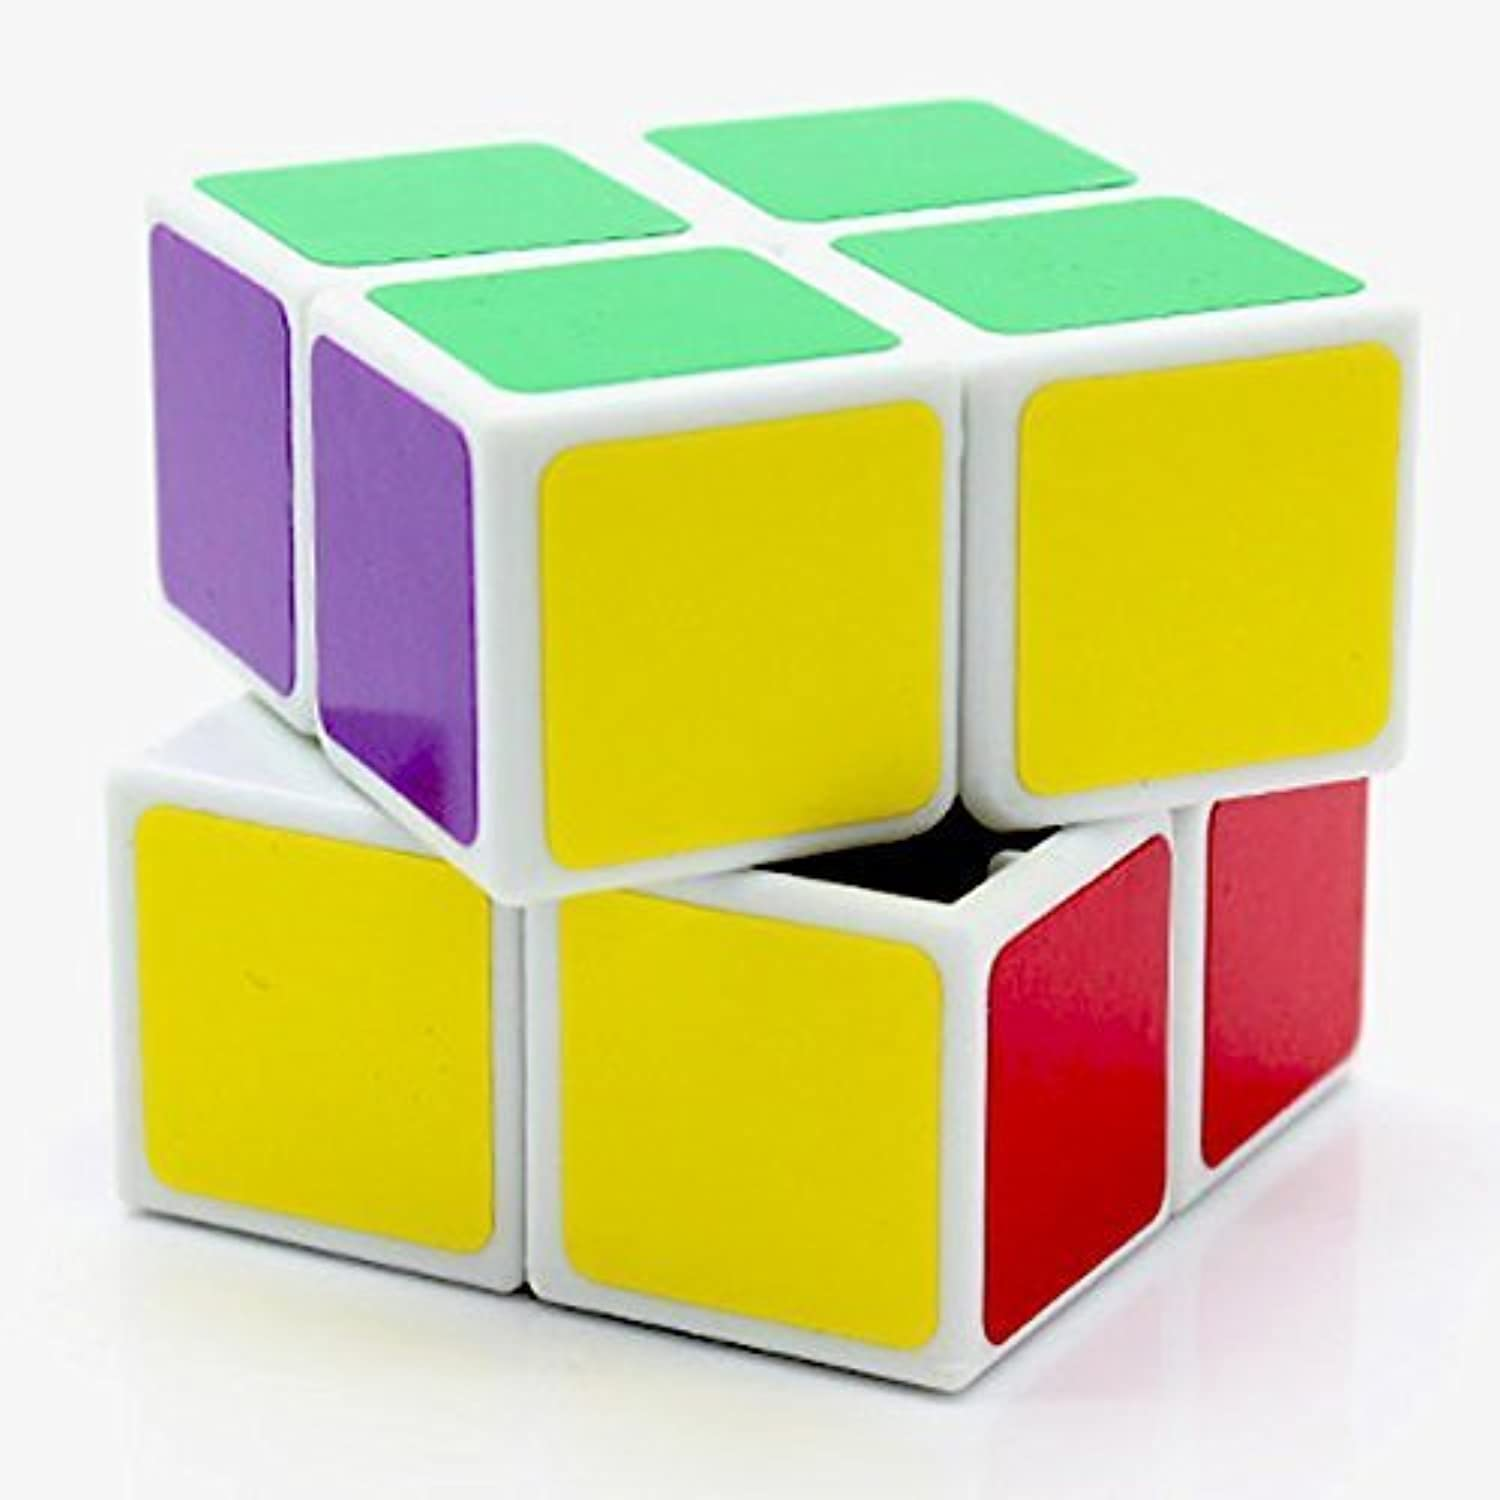 2x2x2 LanLan White Speed Cube Twisty Puzzle Smooth Toy NEW 2x2